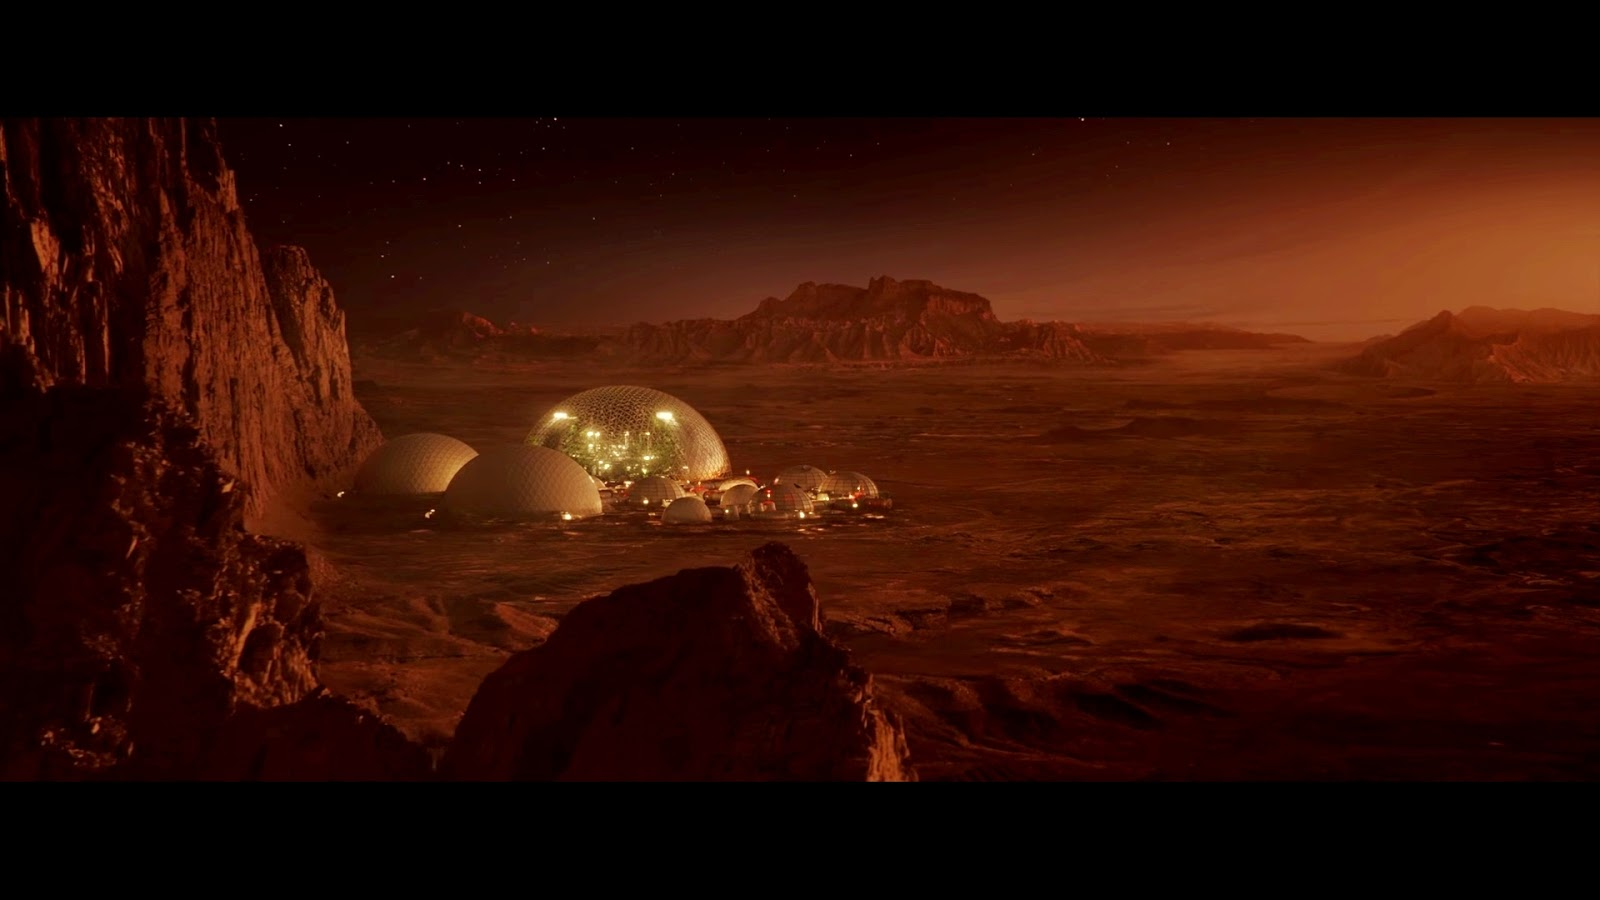 human Mars: Mars colony from The Space Between Us movie